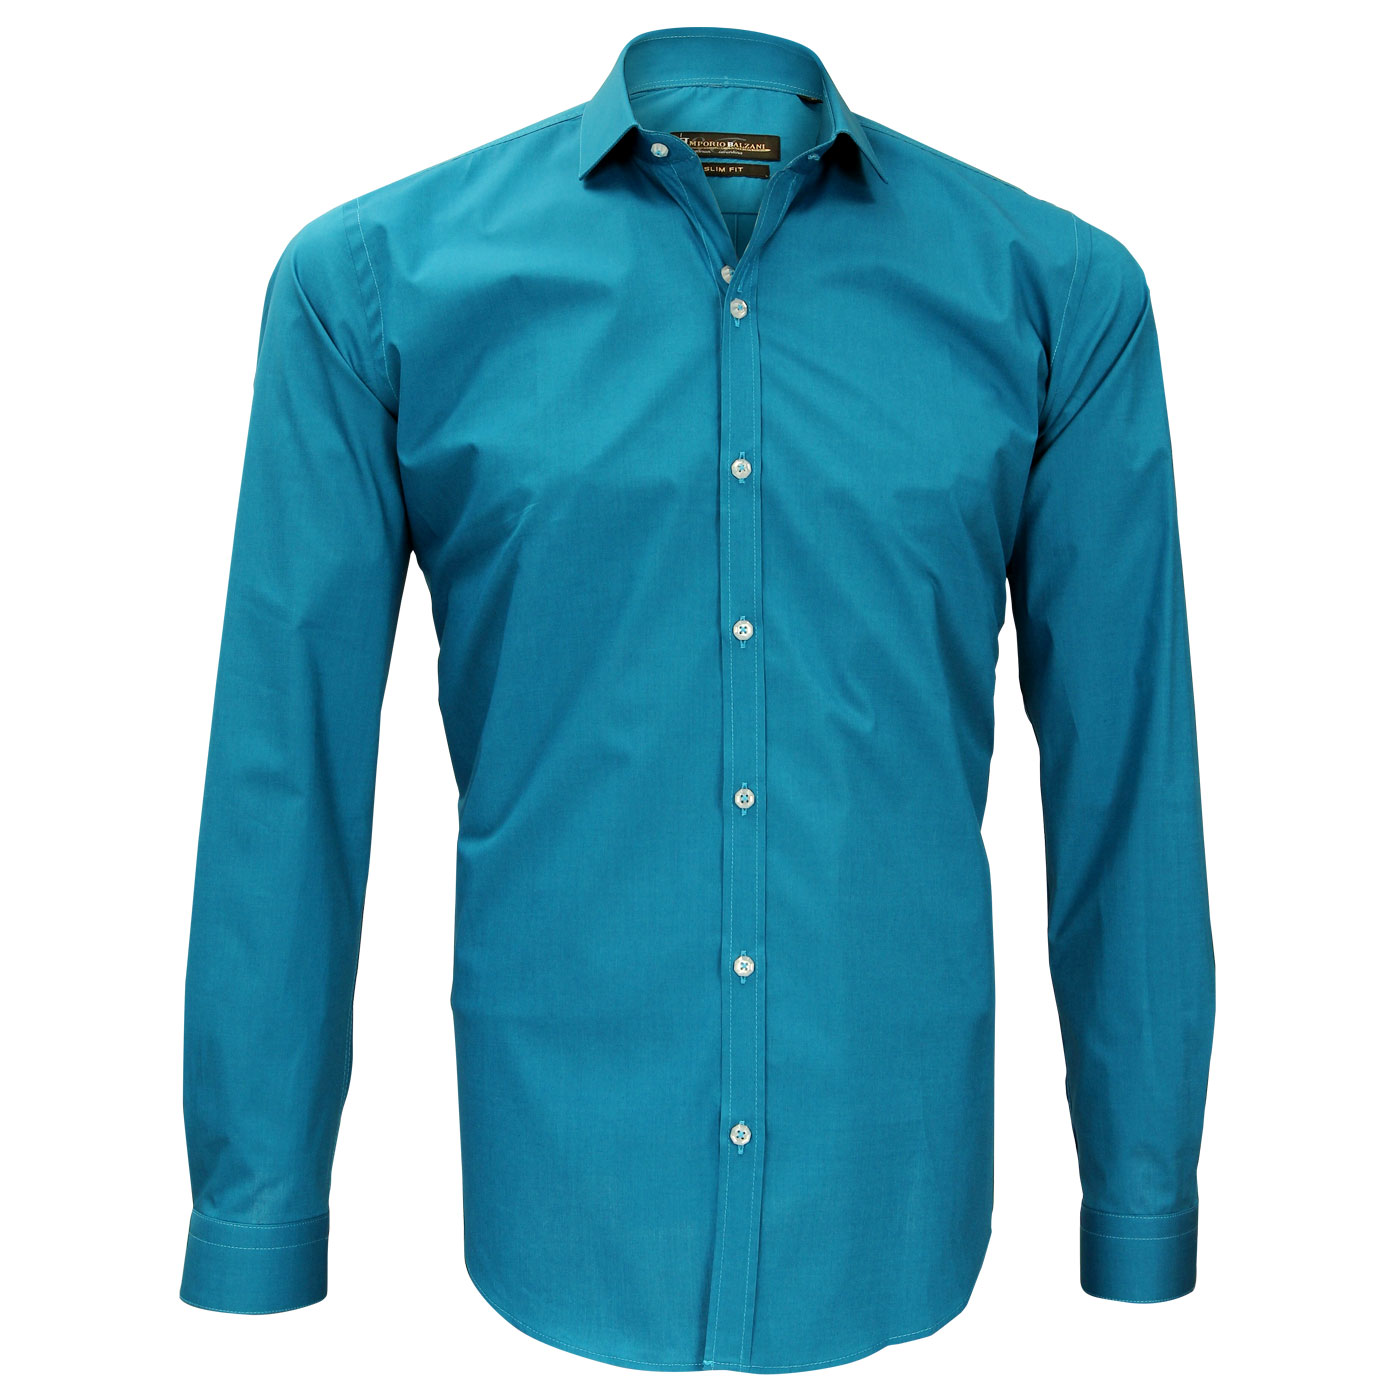 Men's shirt, plainshirt, selling shirt: Webmenshirts